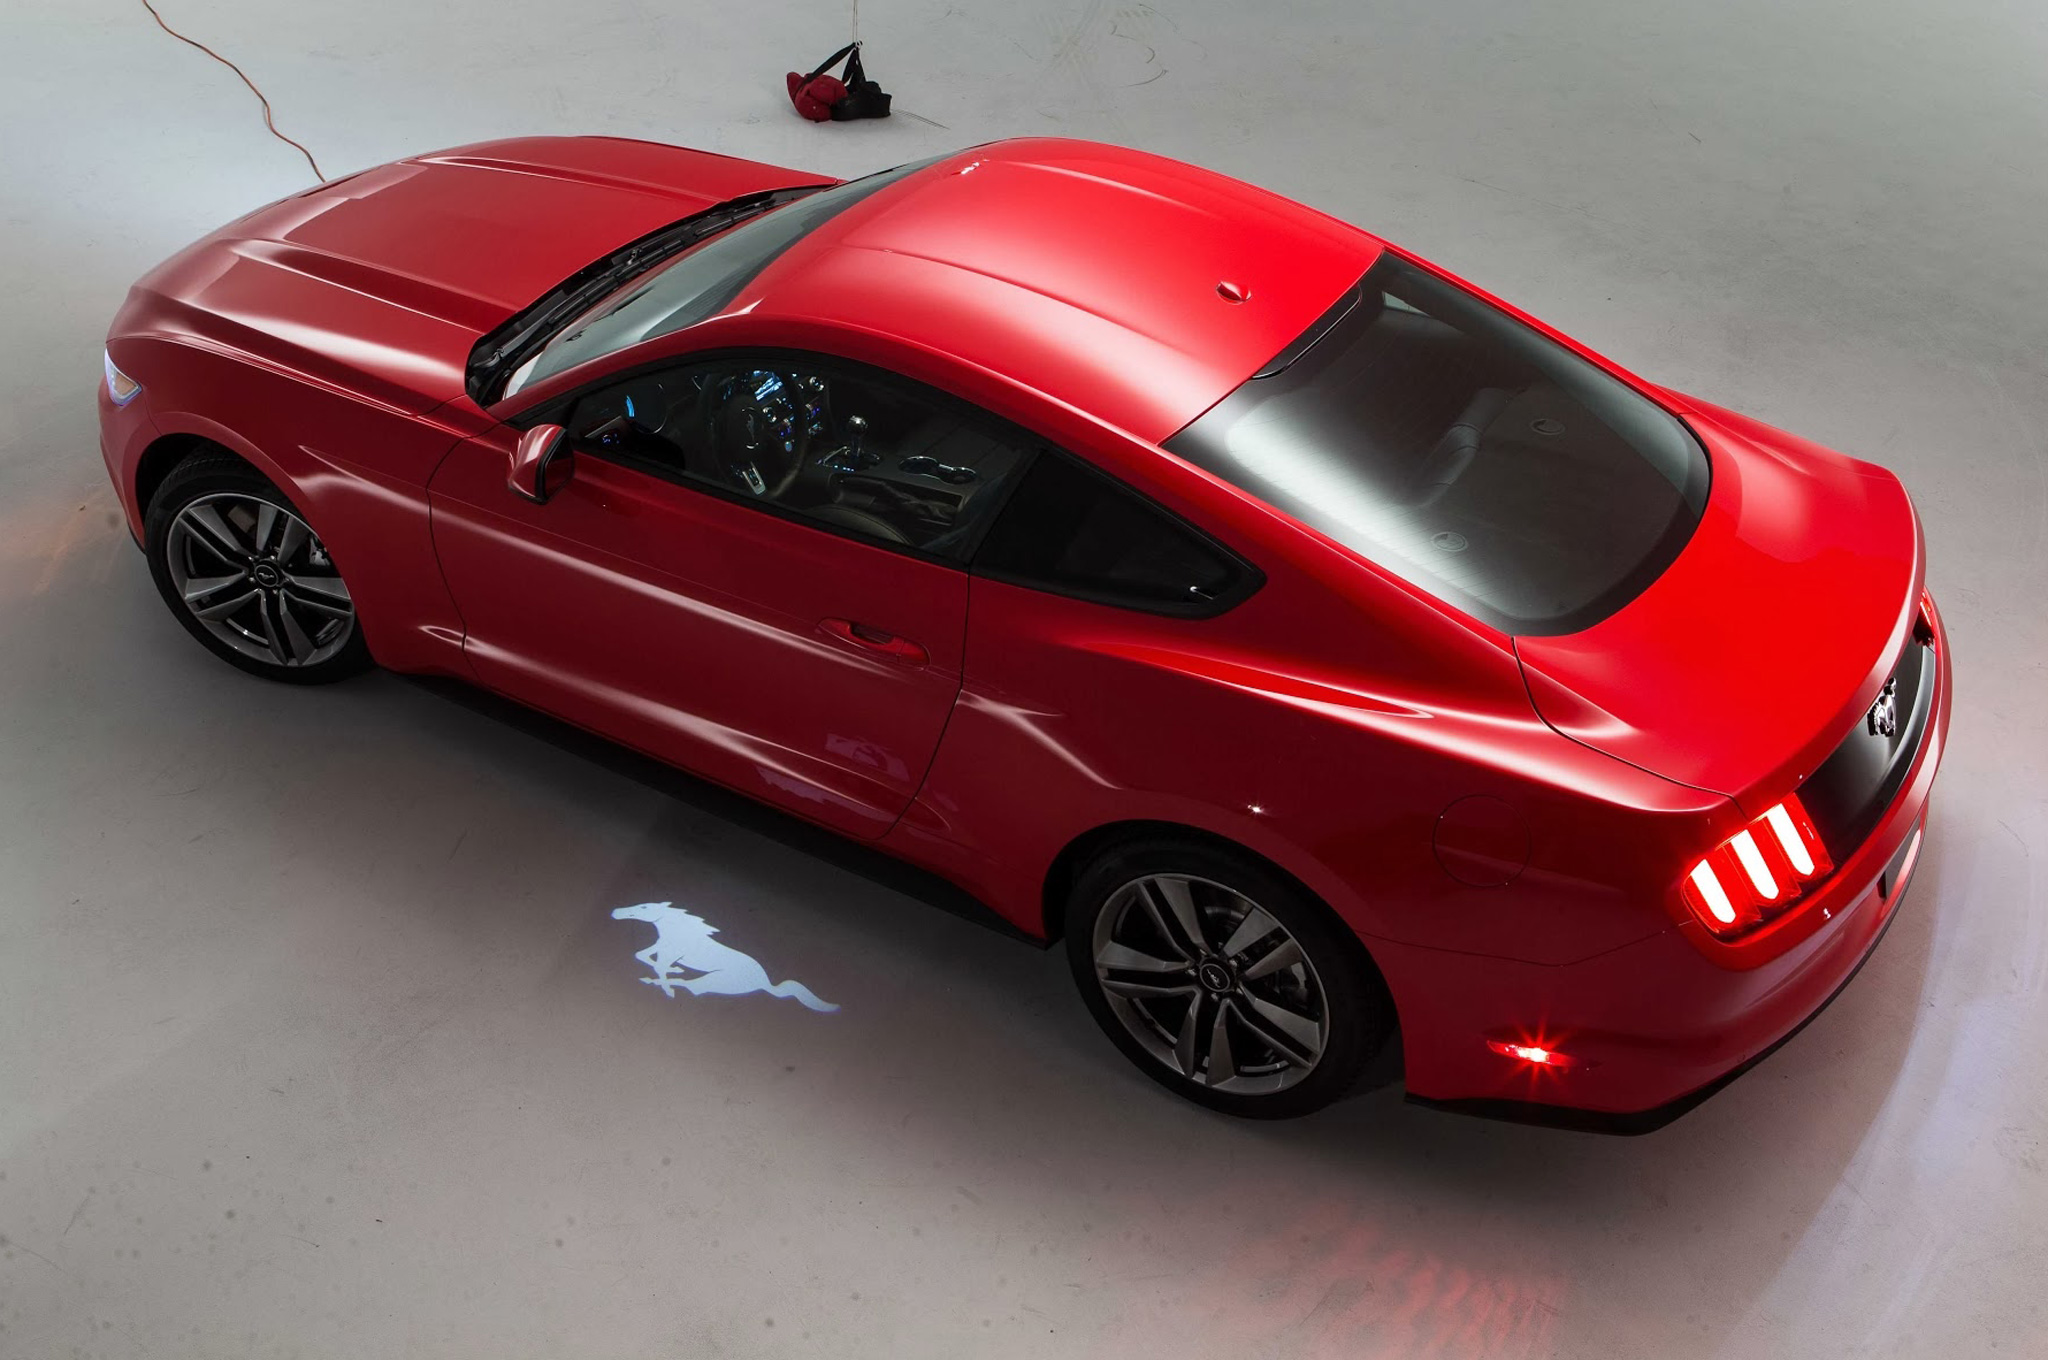 The 2015 Ford Mustang: Finally, a Real Sports Car? - The Lohdown